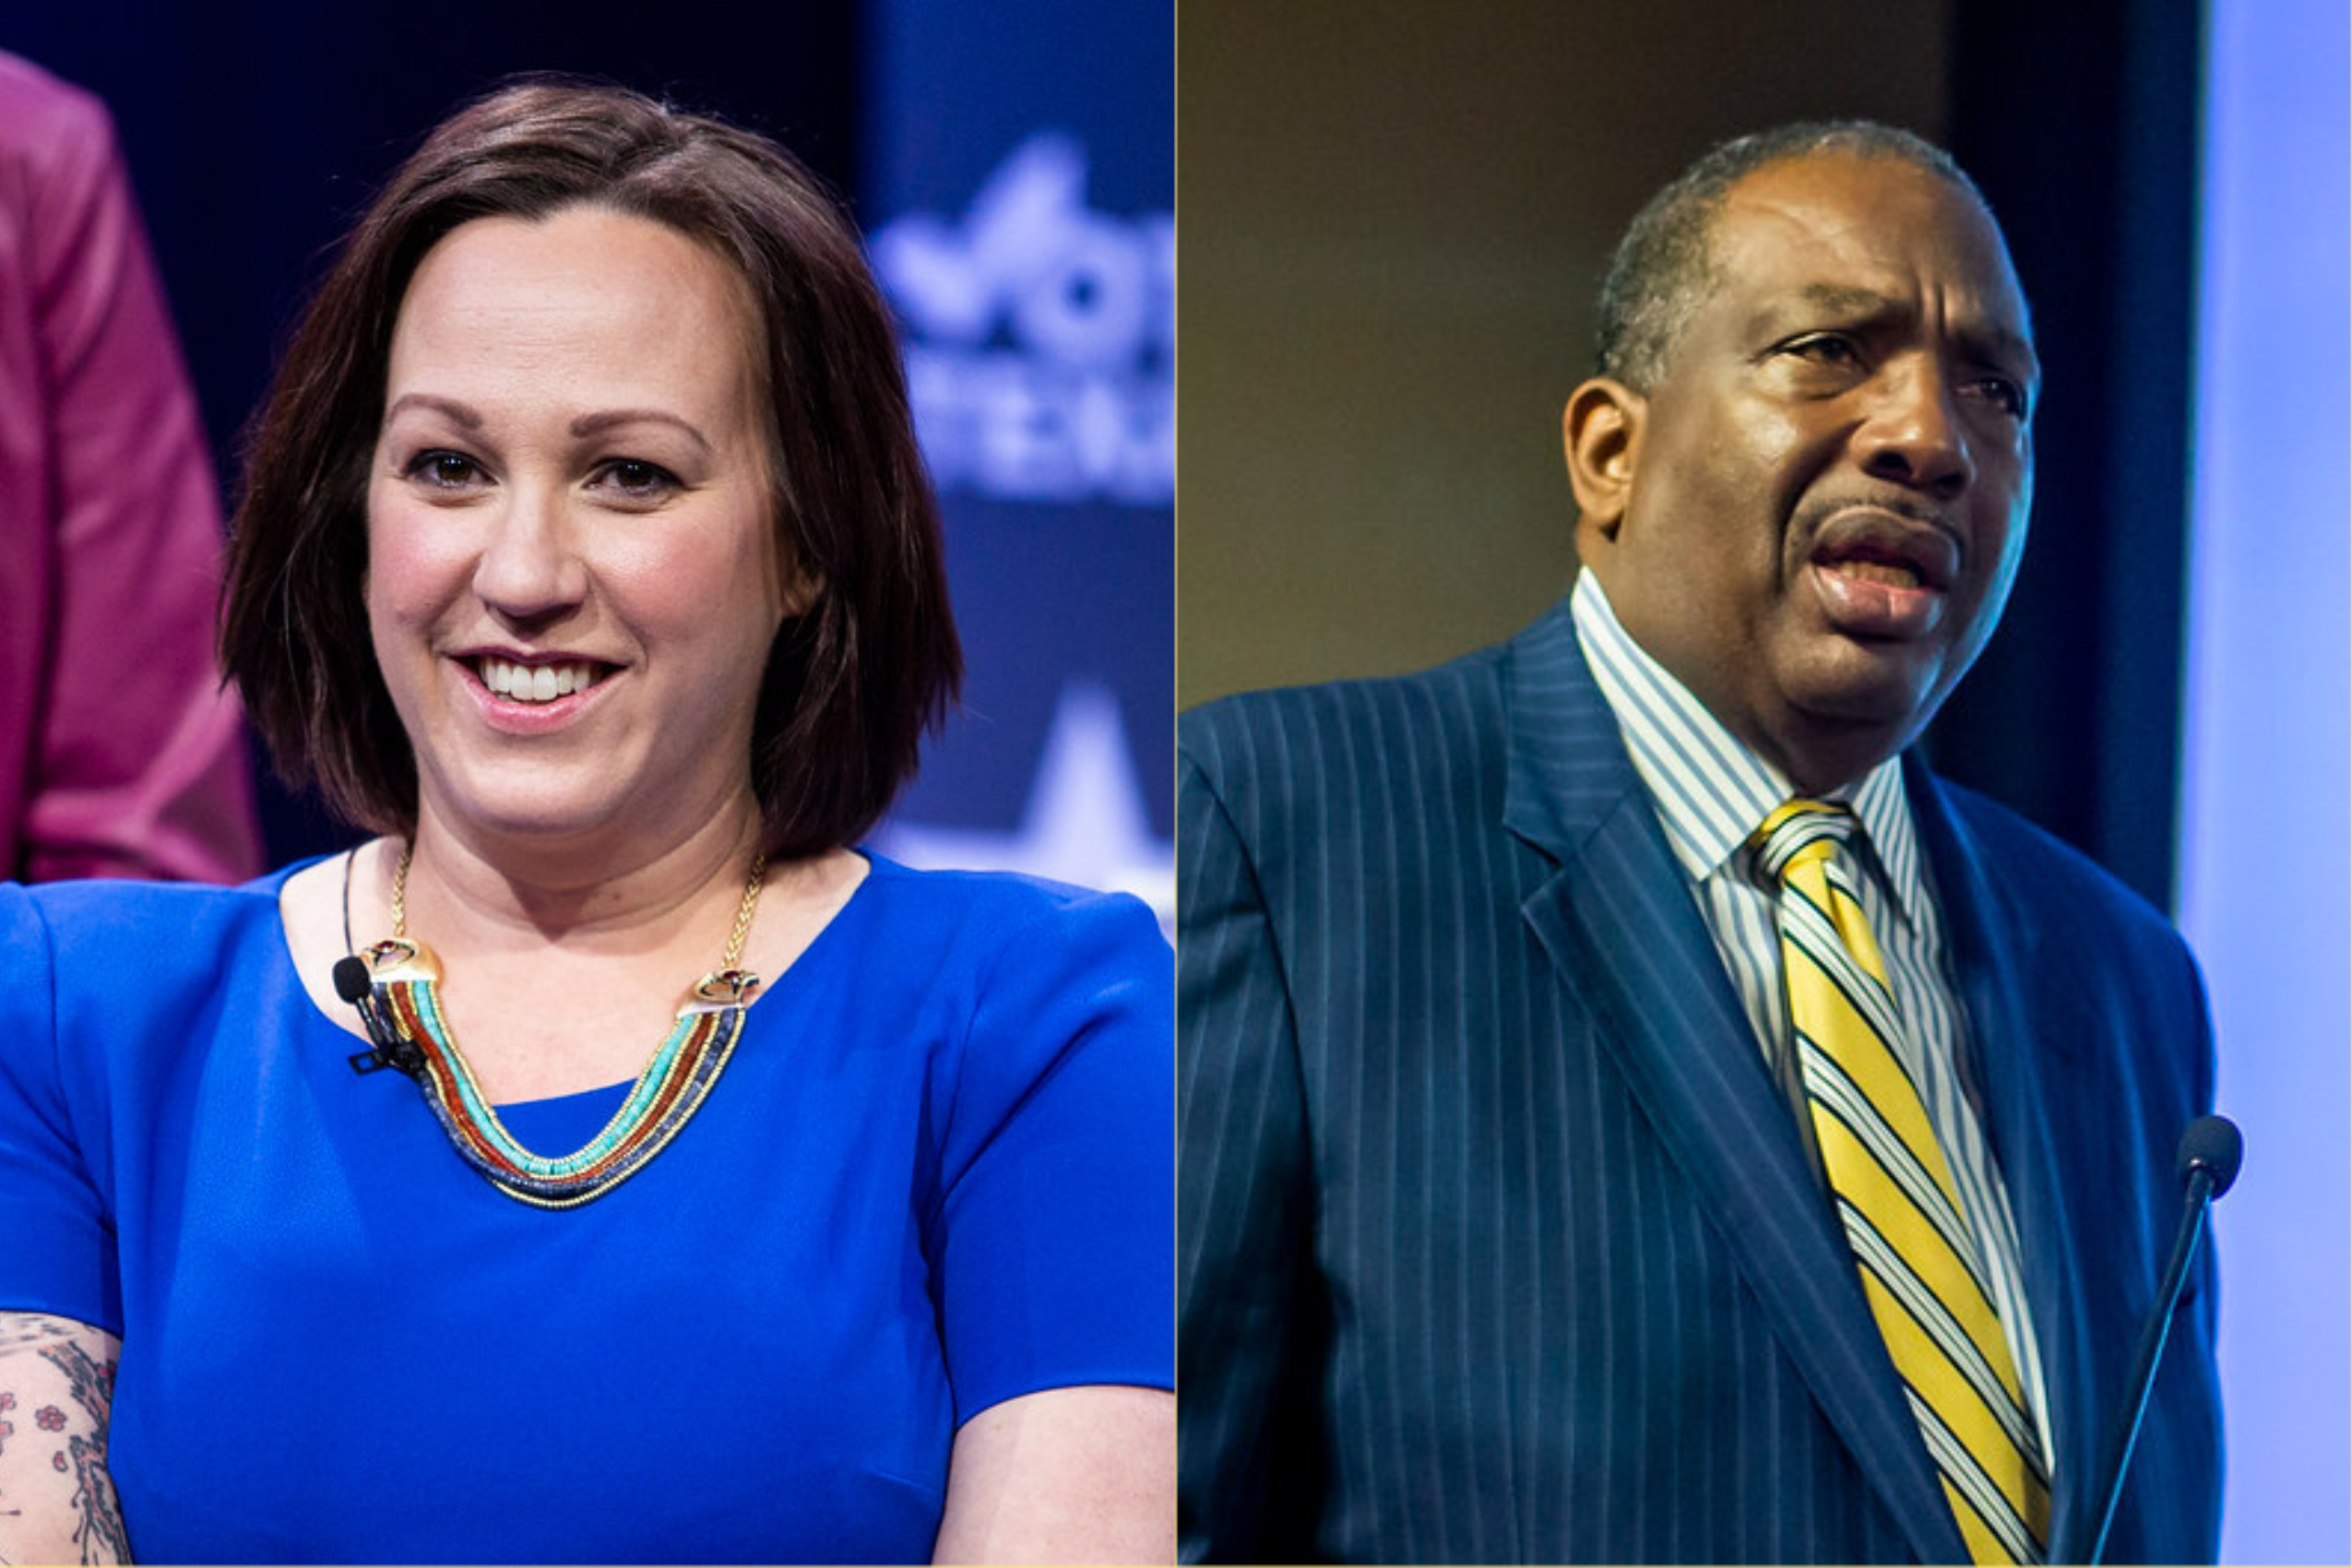 Royce West And Mj Hegar Call For Criminal Justice Reform Save